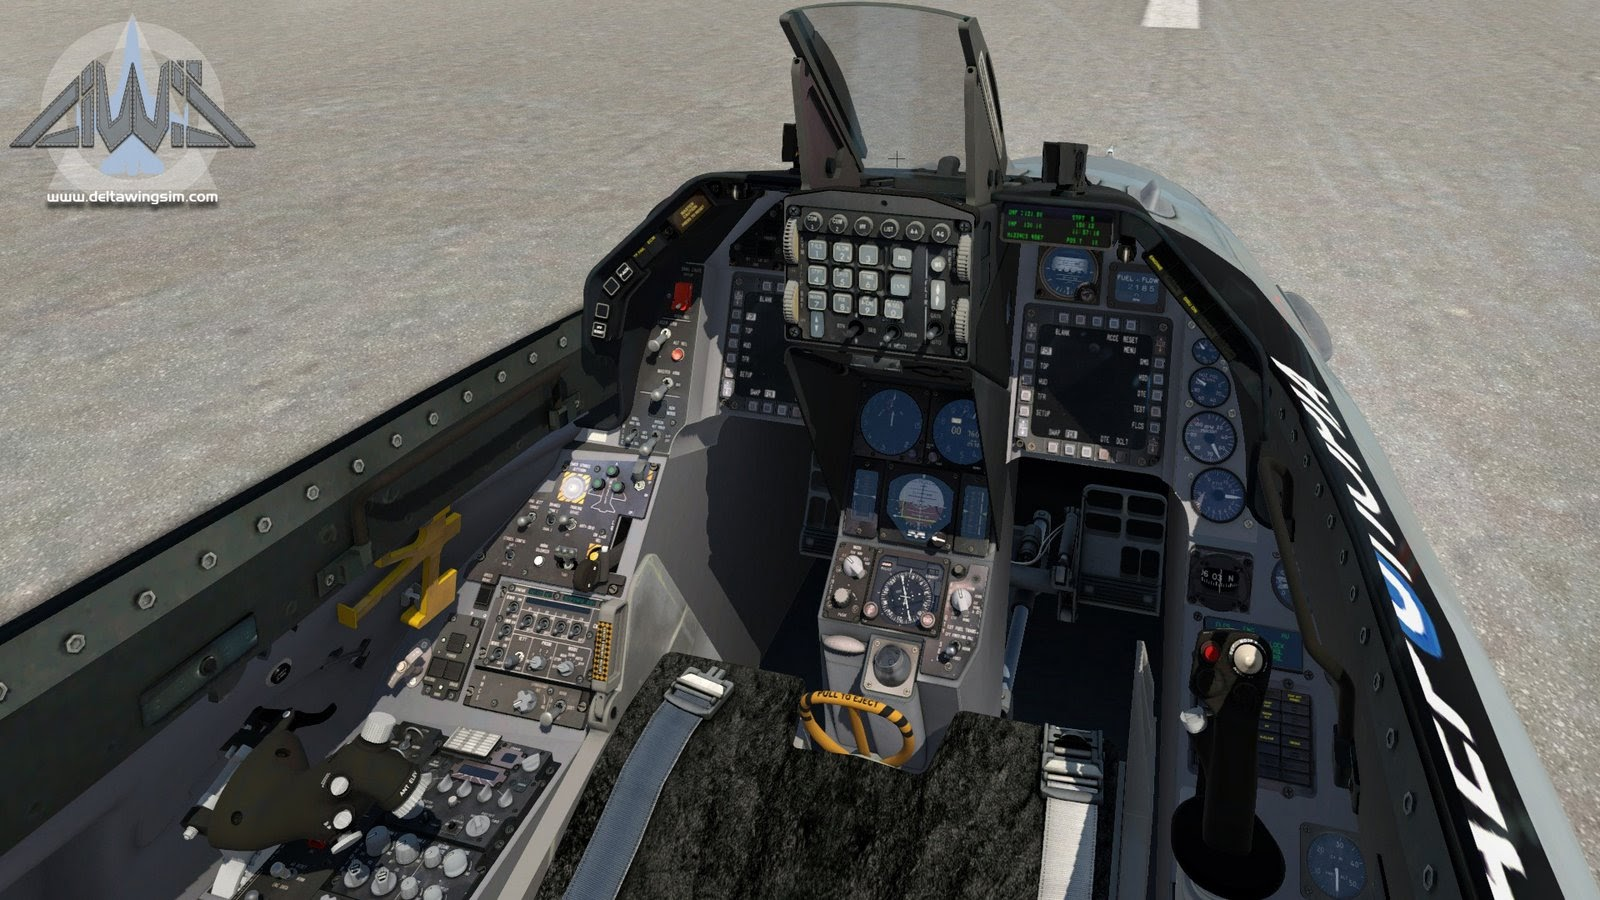 DeltaWing Simulations Releases F-16 for X-Plane - Threshold